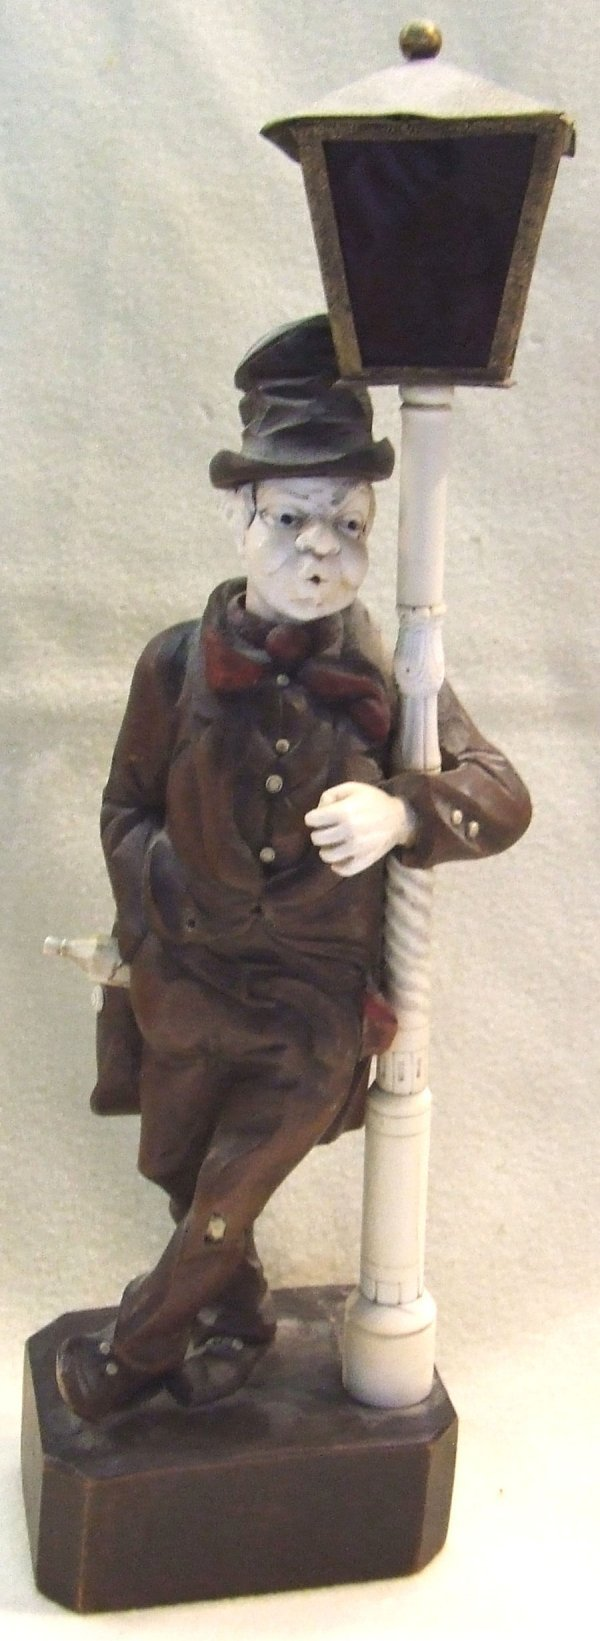 263: German Automaton figure of a whistling man holding